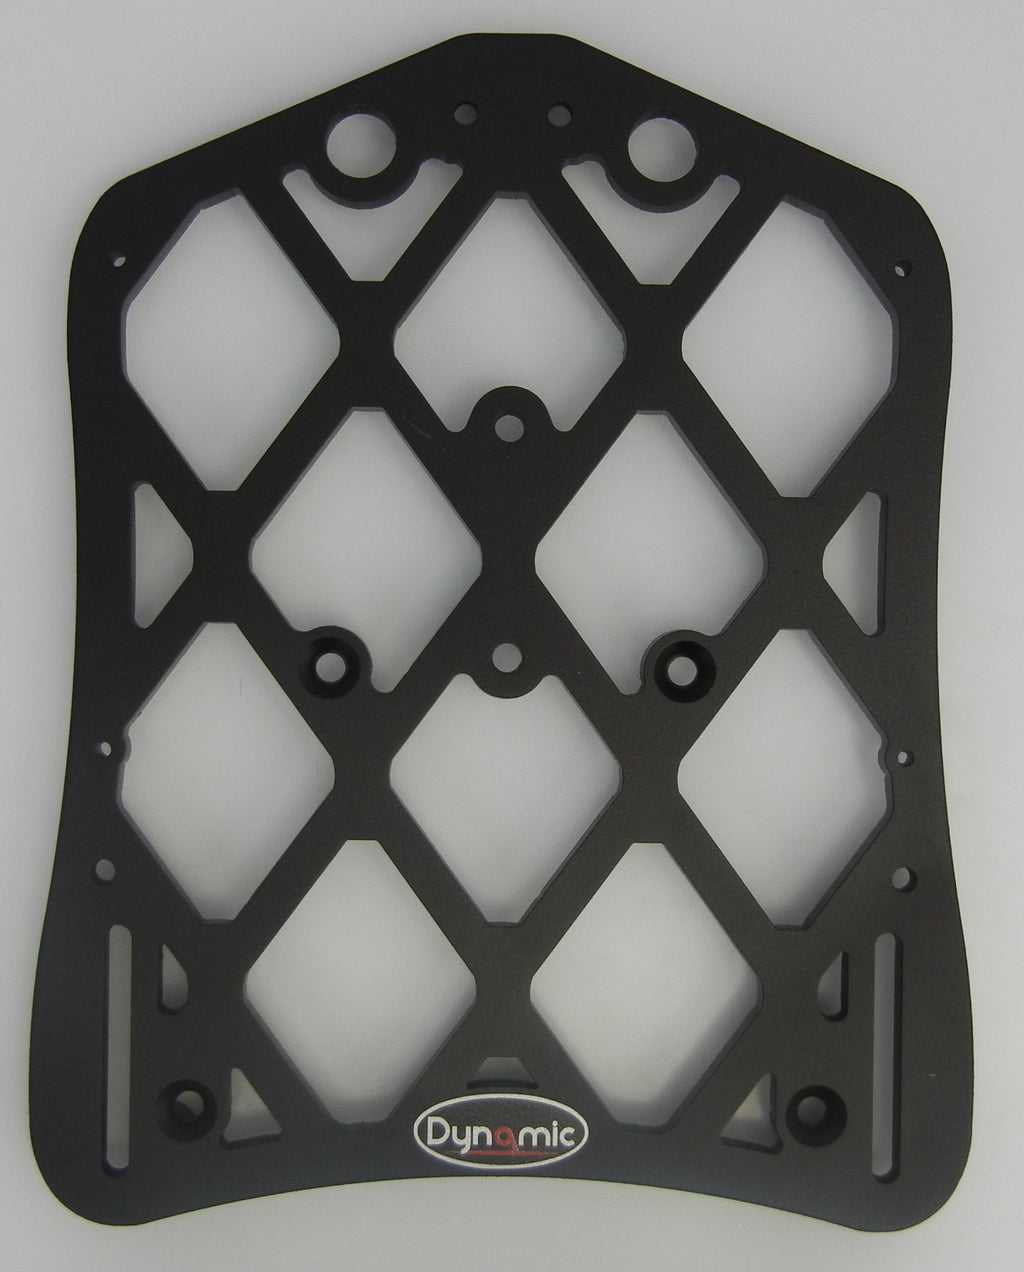 Long Luggage Rack Topcase Mount for Triumph Tiger Explorer 1200,XC, XCX, XCA, XR, XRX, XRT.